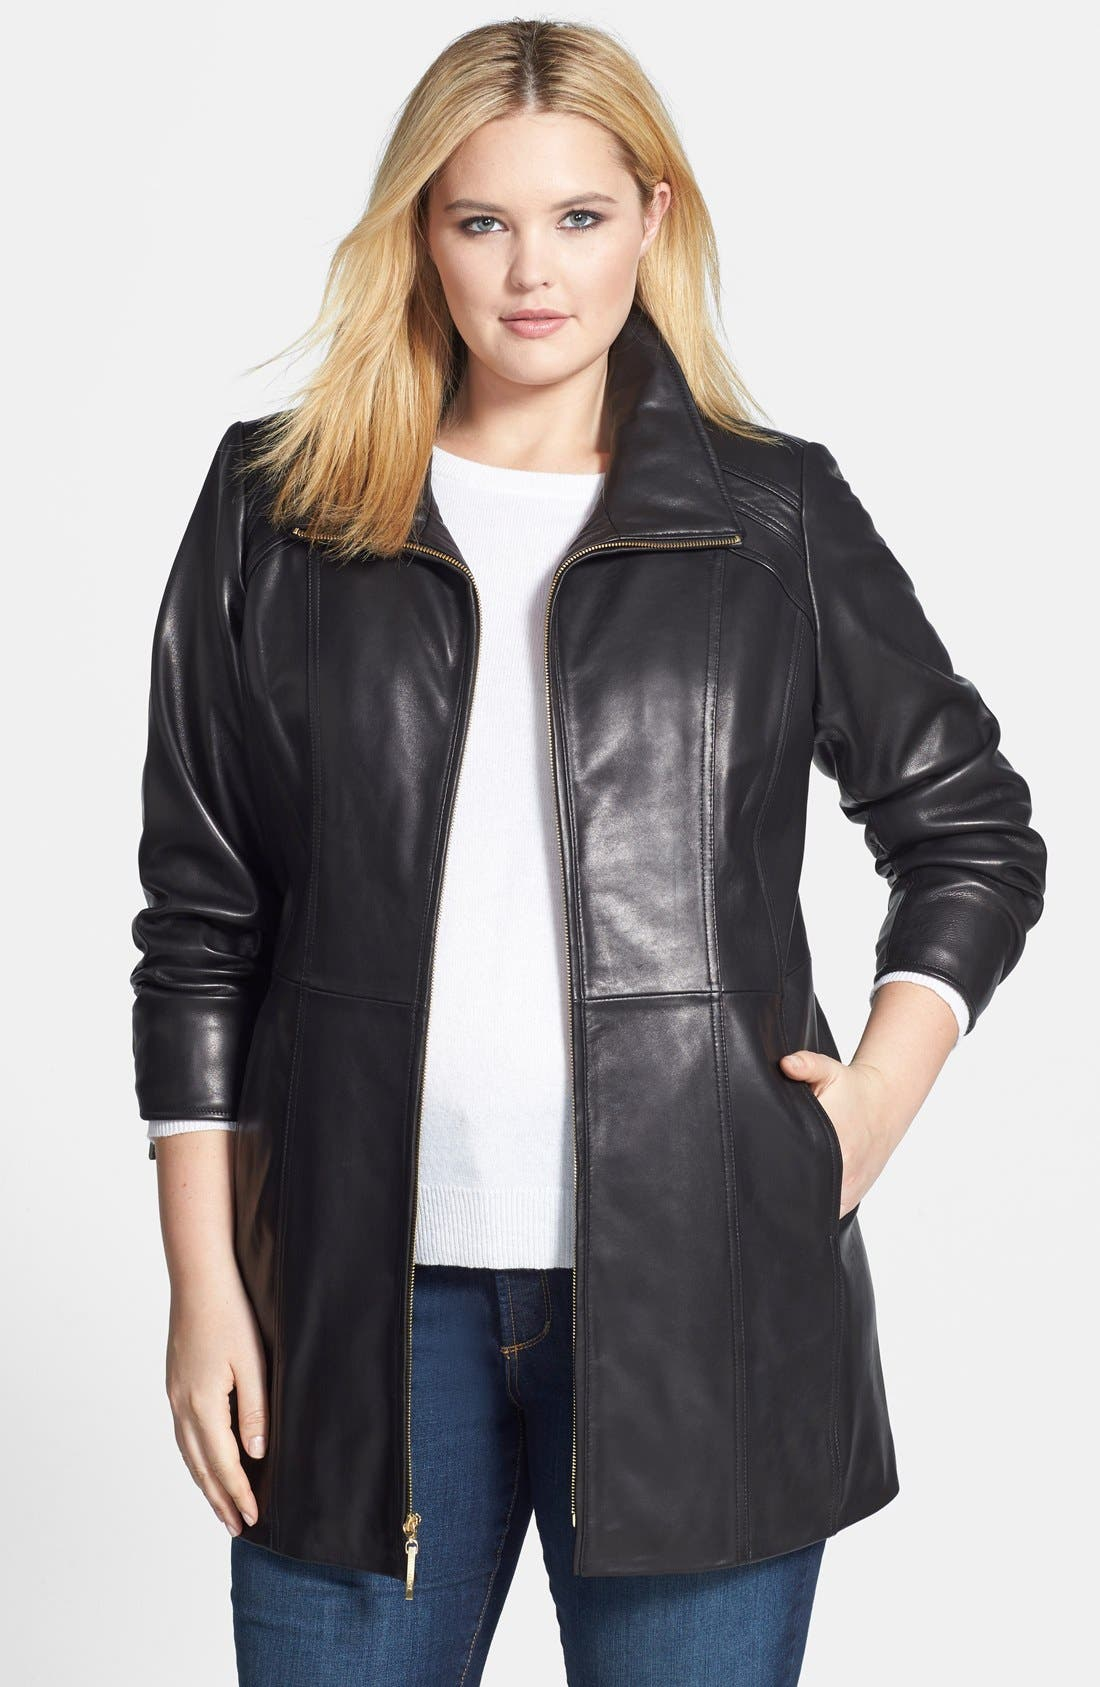 Women's Leather (Genuine) Jackets Sale | Coats & Outerwear ...